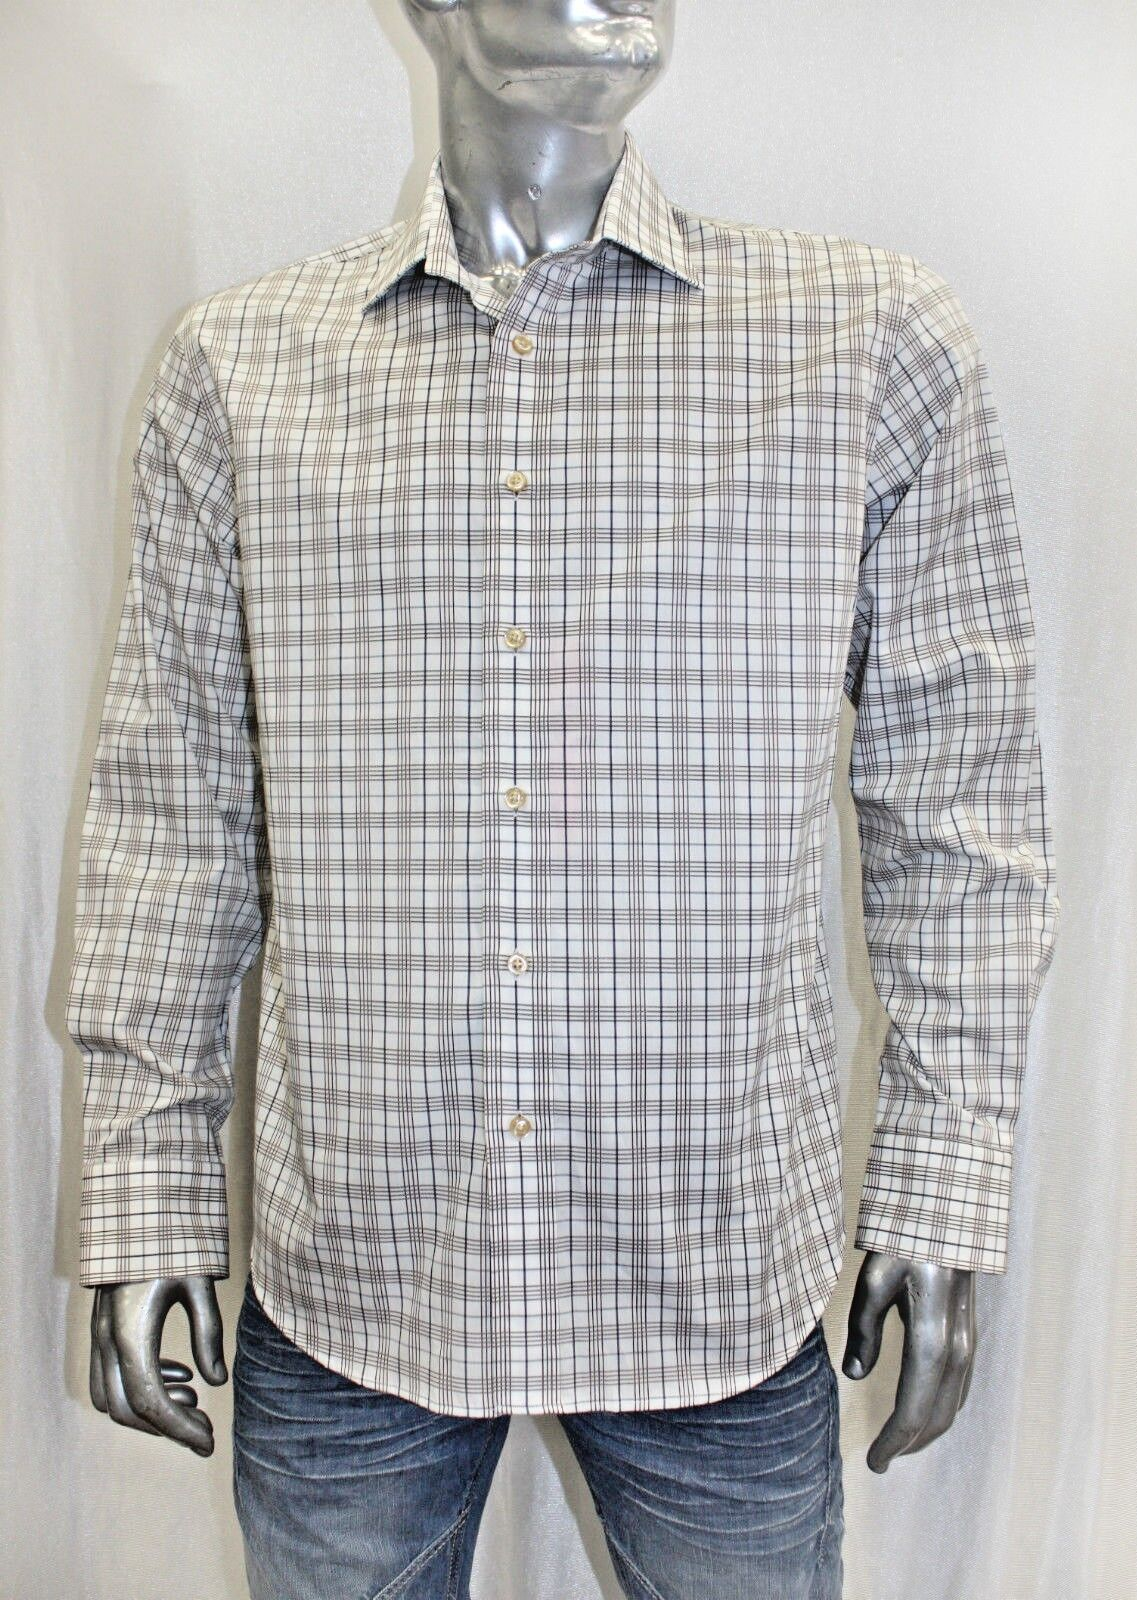 Men's Rufus Plaid White   Brown   Navy Long Sleeve Button Down Shirt